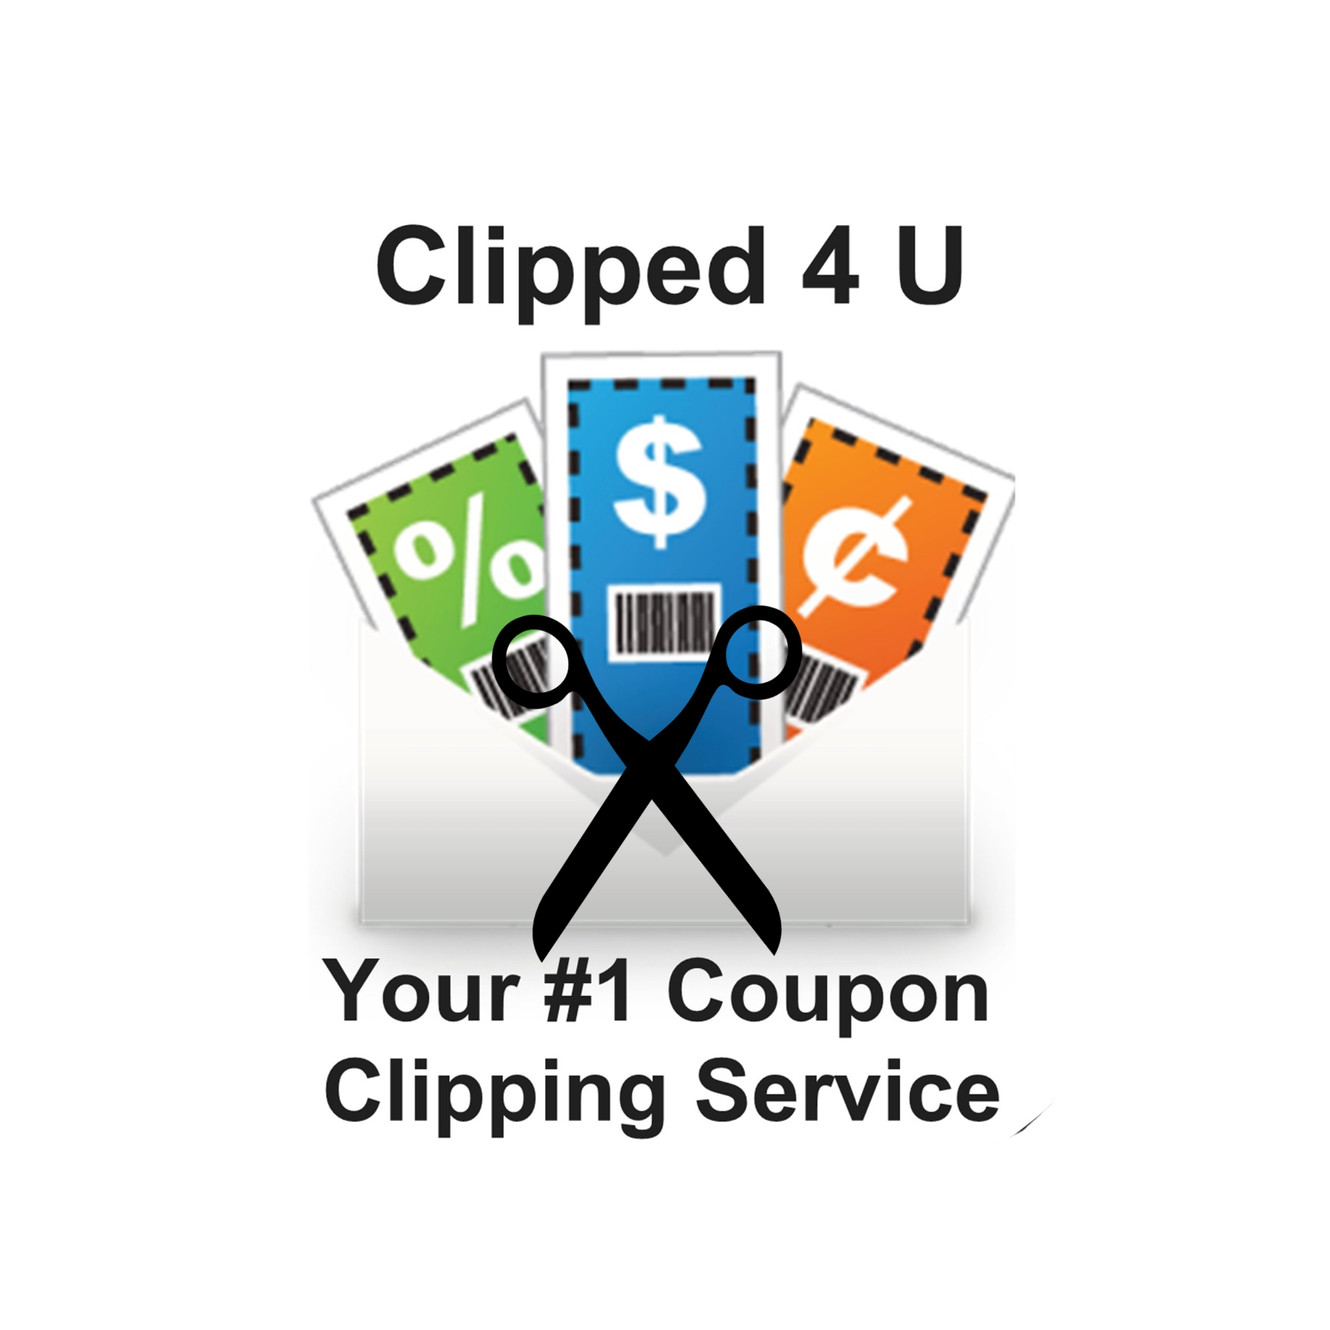 Coupon Clipping Service Il Clipped 4 U